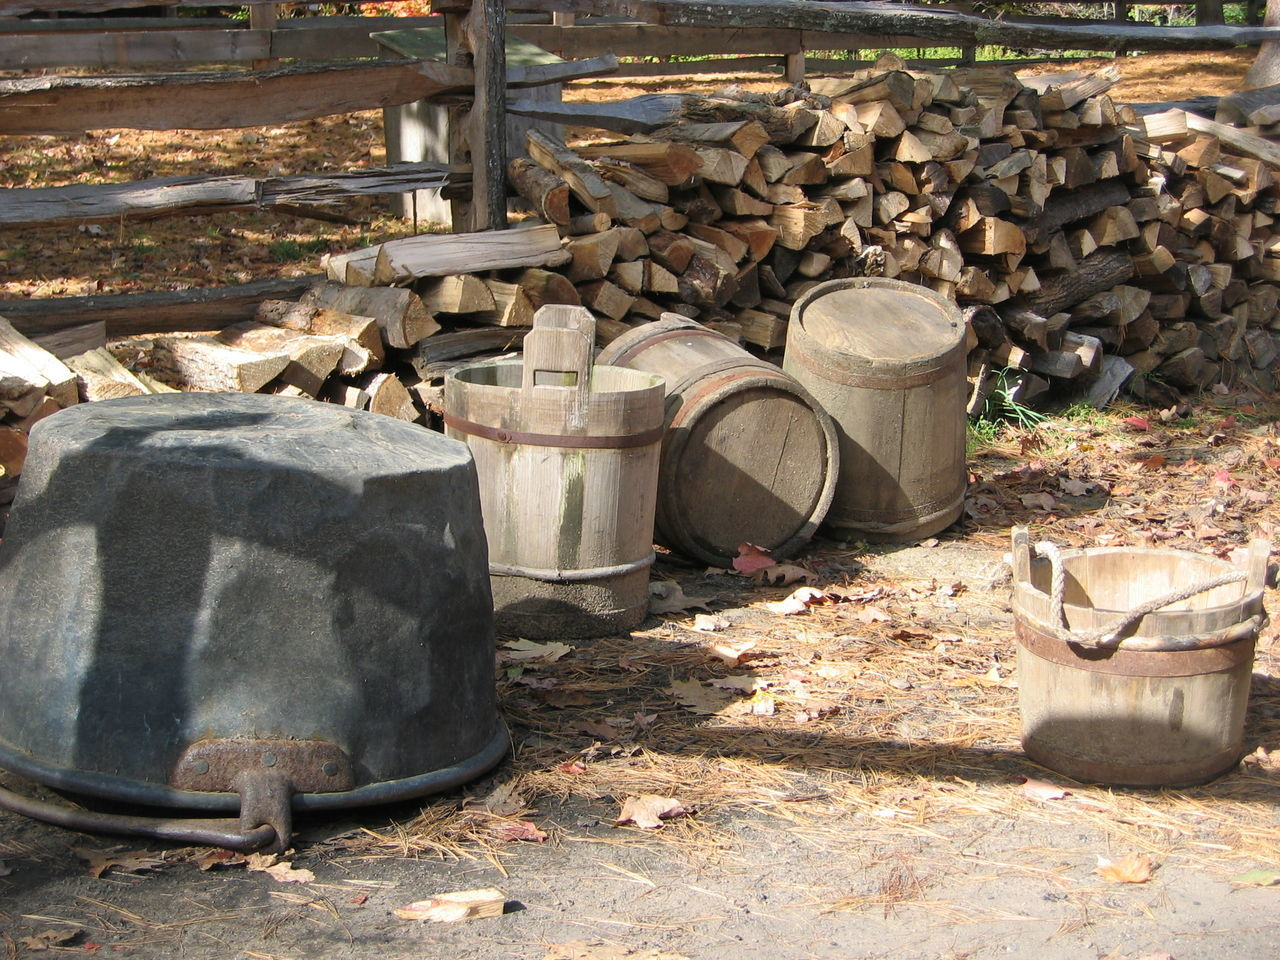 Buckets Cauldron Farm Fence Firewood Heap Log Man Made Object No People Outdoors Rocky Split Rail Fence Stone Material Stone Wall Wood Barrels Wood Pile